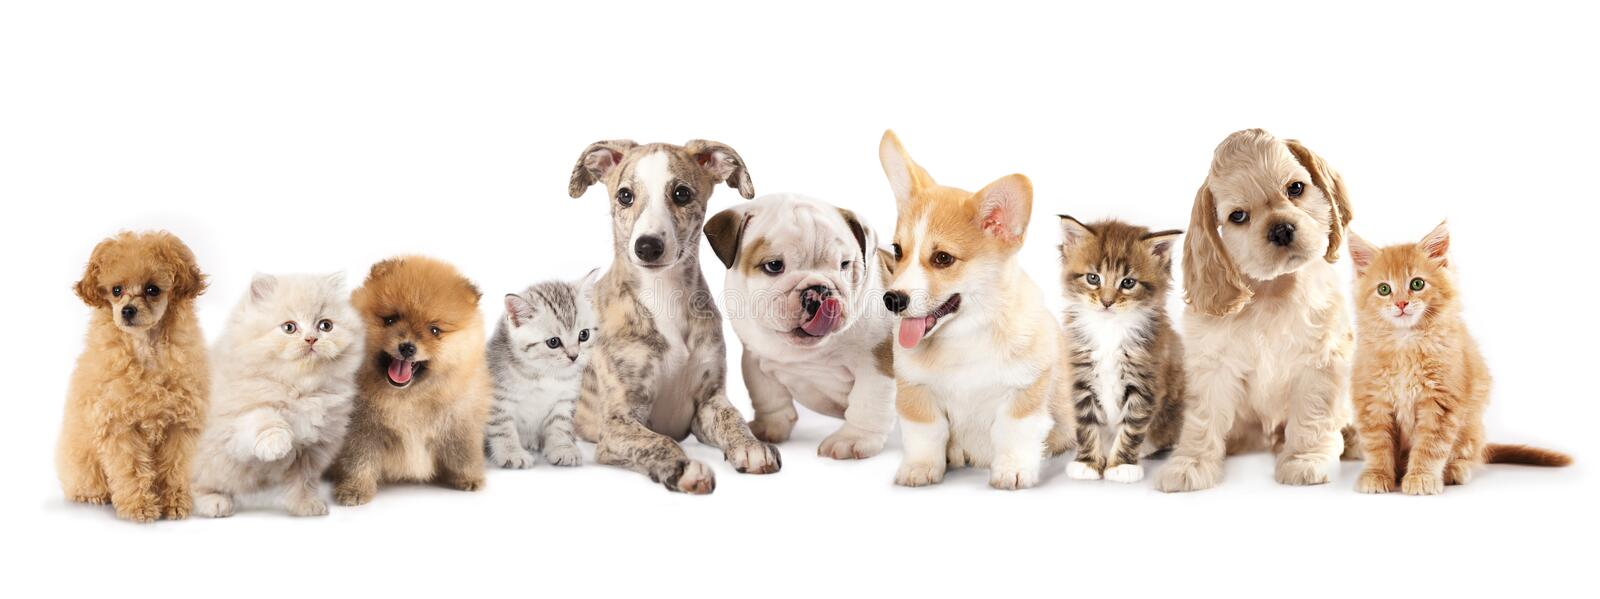 Chiots et chatons photos stock